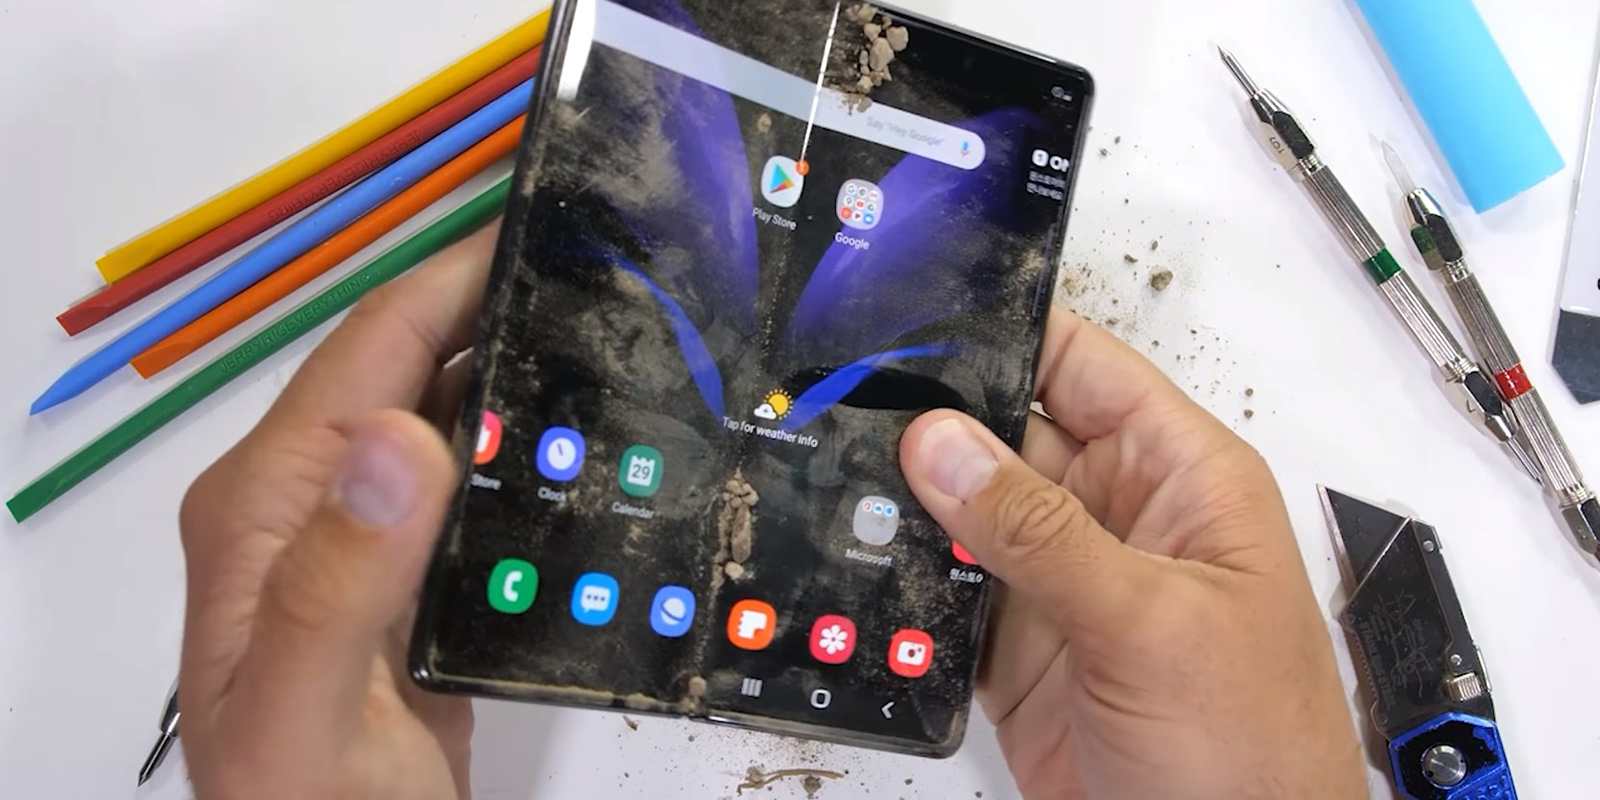 Galaxy Fold 2 durability test shows the strong hinge [Video]